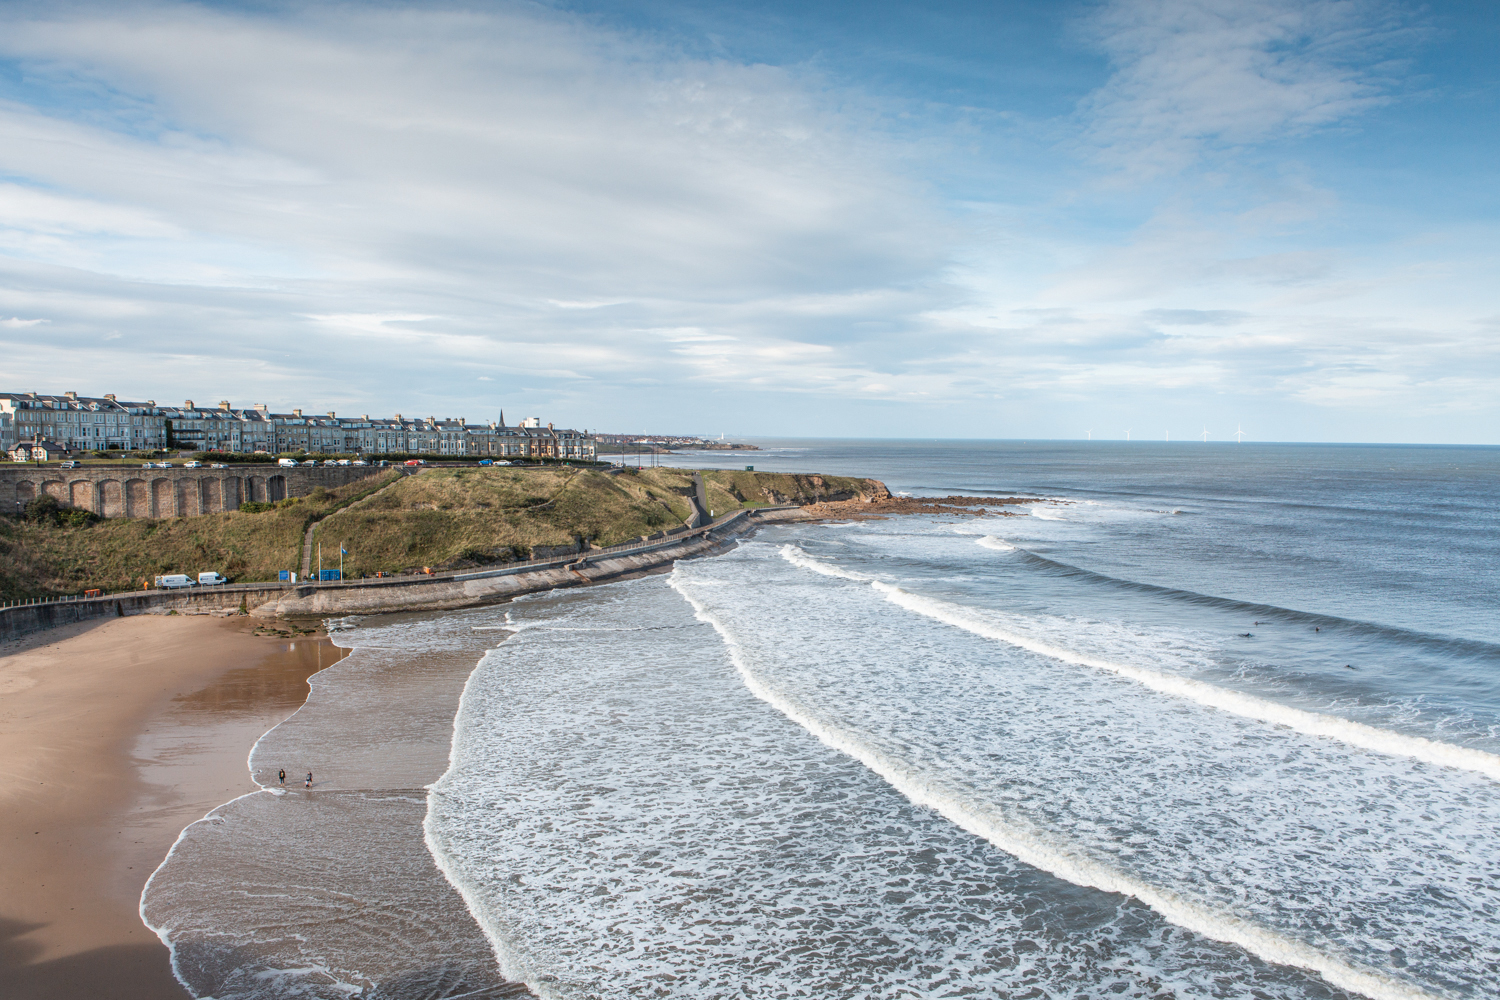 North of Tyne_beach image.jpg